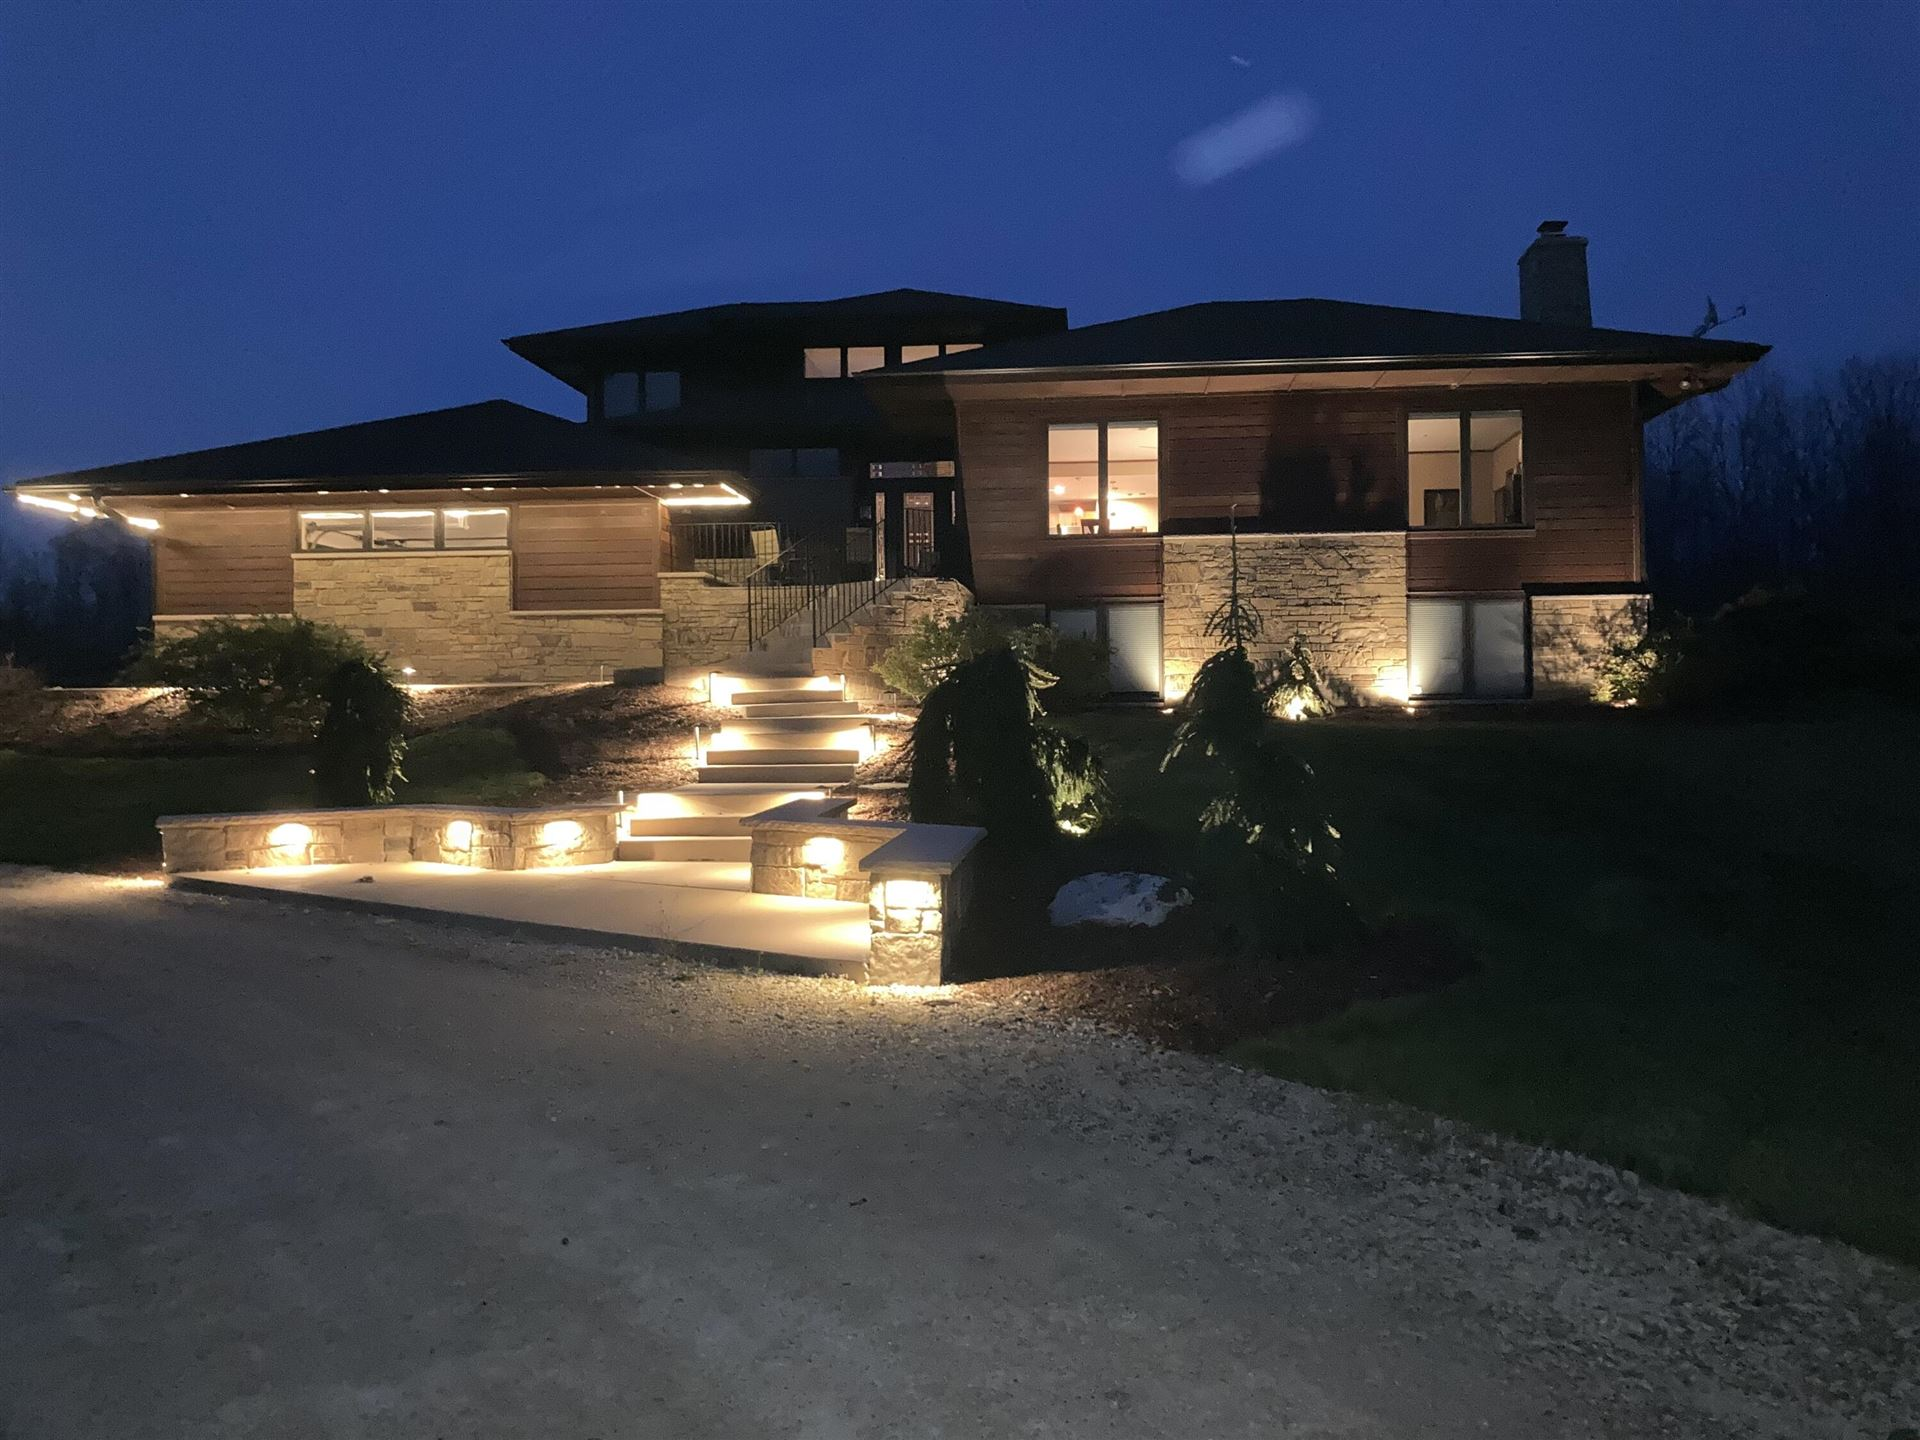 14150 N Lake Shore Dr, Mequon, WI 53097 - #: 1764057